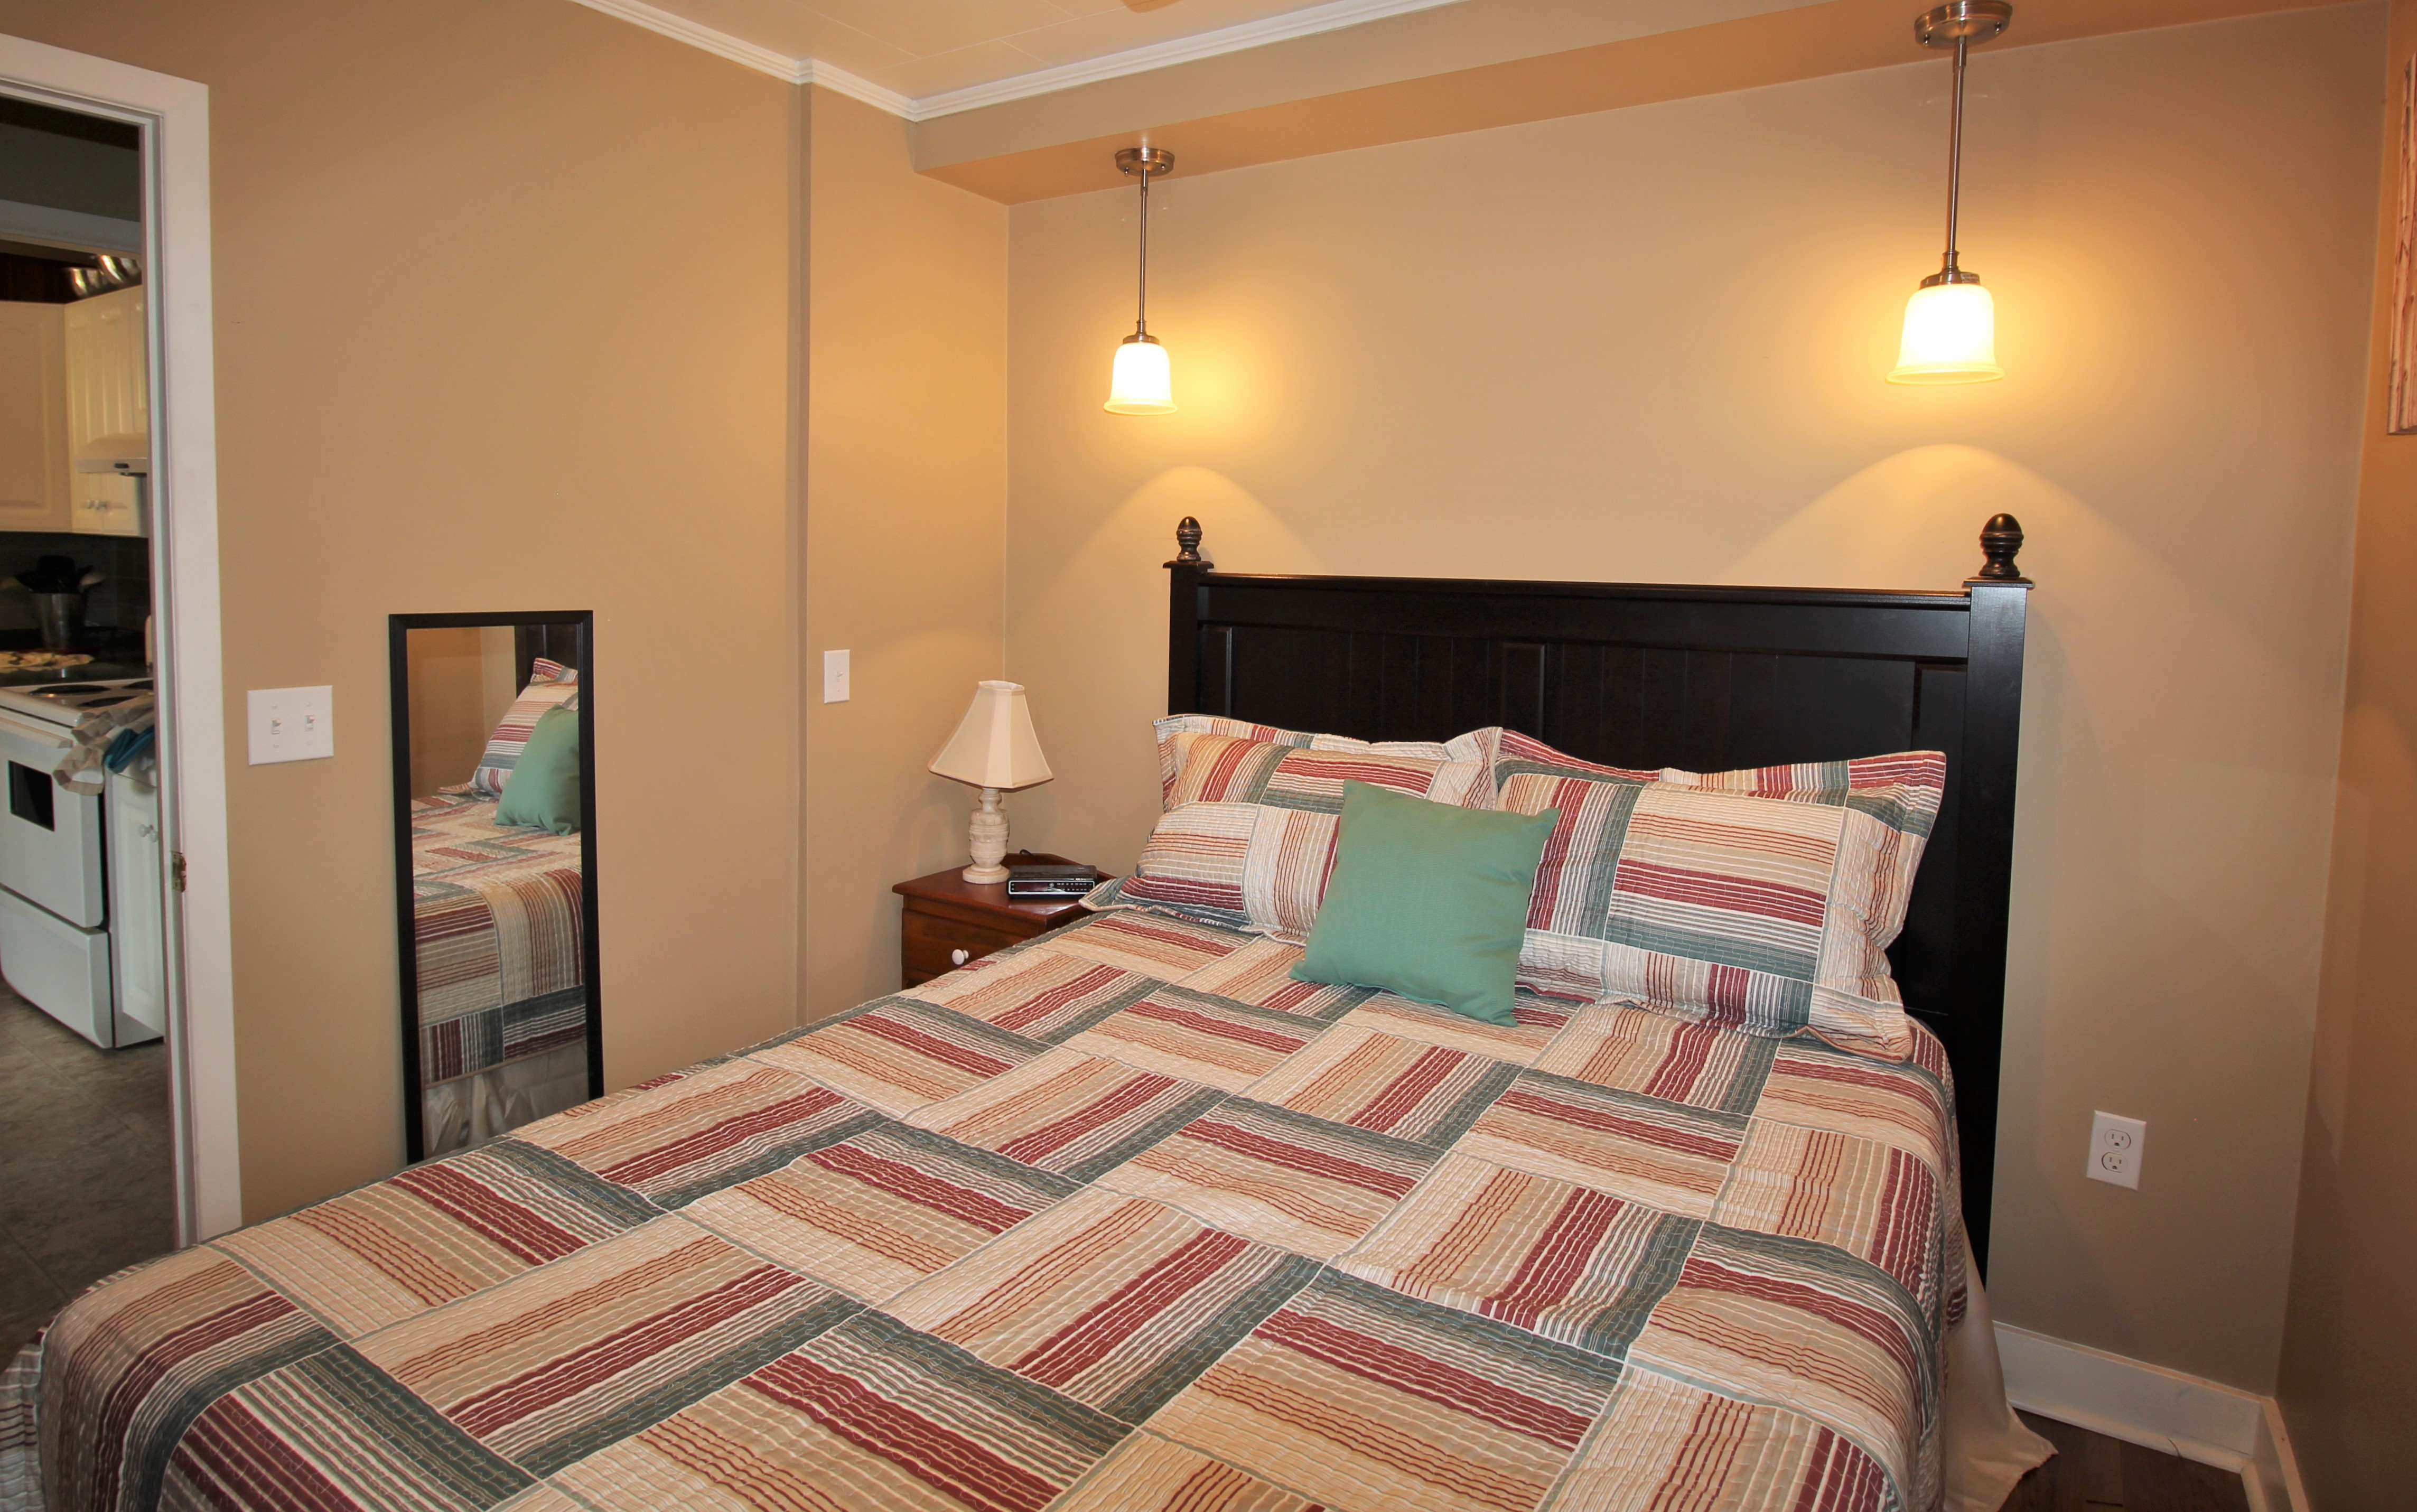 Cambridge Cottage - Bedroom 2 Queen Bed - Crystal Beach Cottage Rentals - Lake Erie